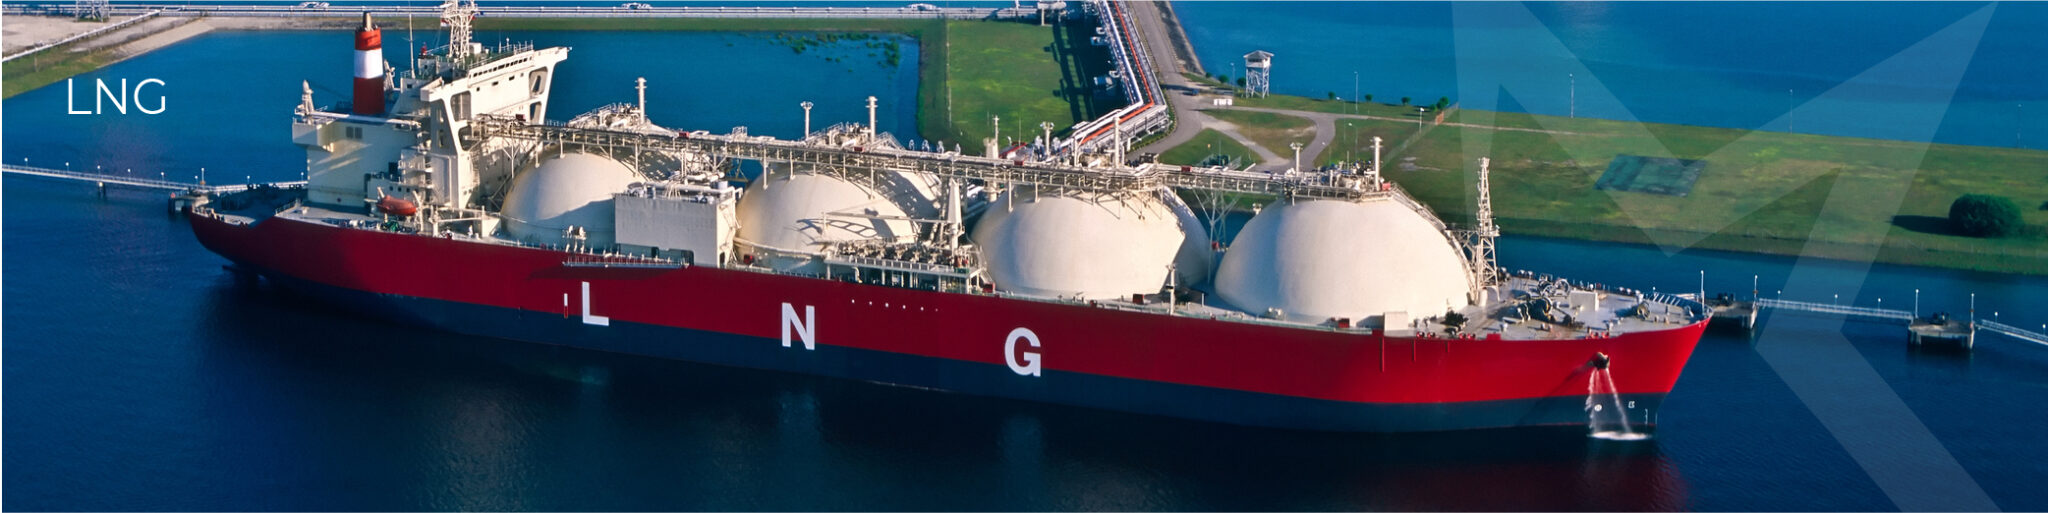 Boat carrying Liquefied Natural Gas